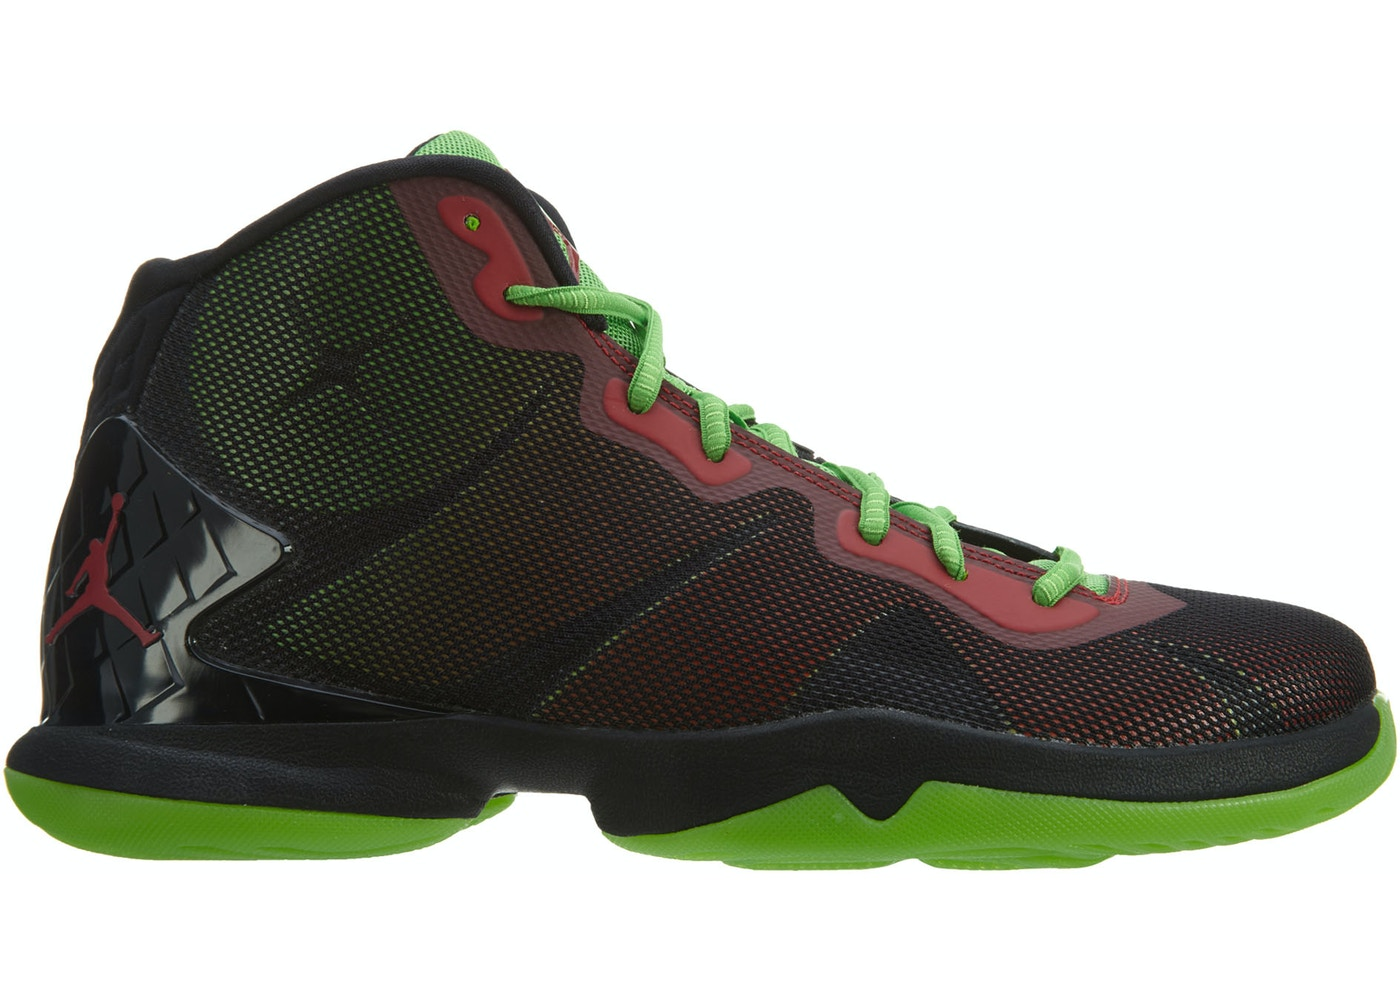 competitive price 153f1 c4b78 Jordan Super.Fly 4 Black Gym Red-Green Pls-Infrared 23 - 768929-006